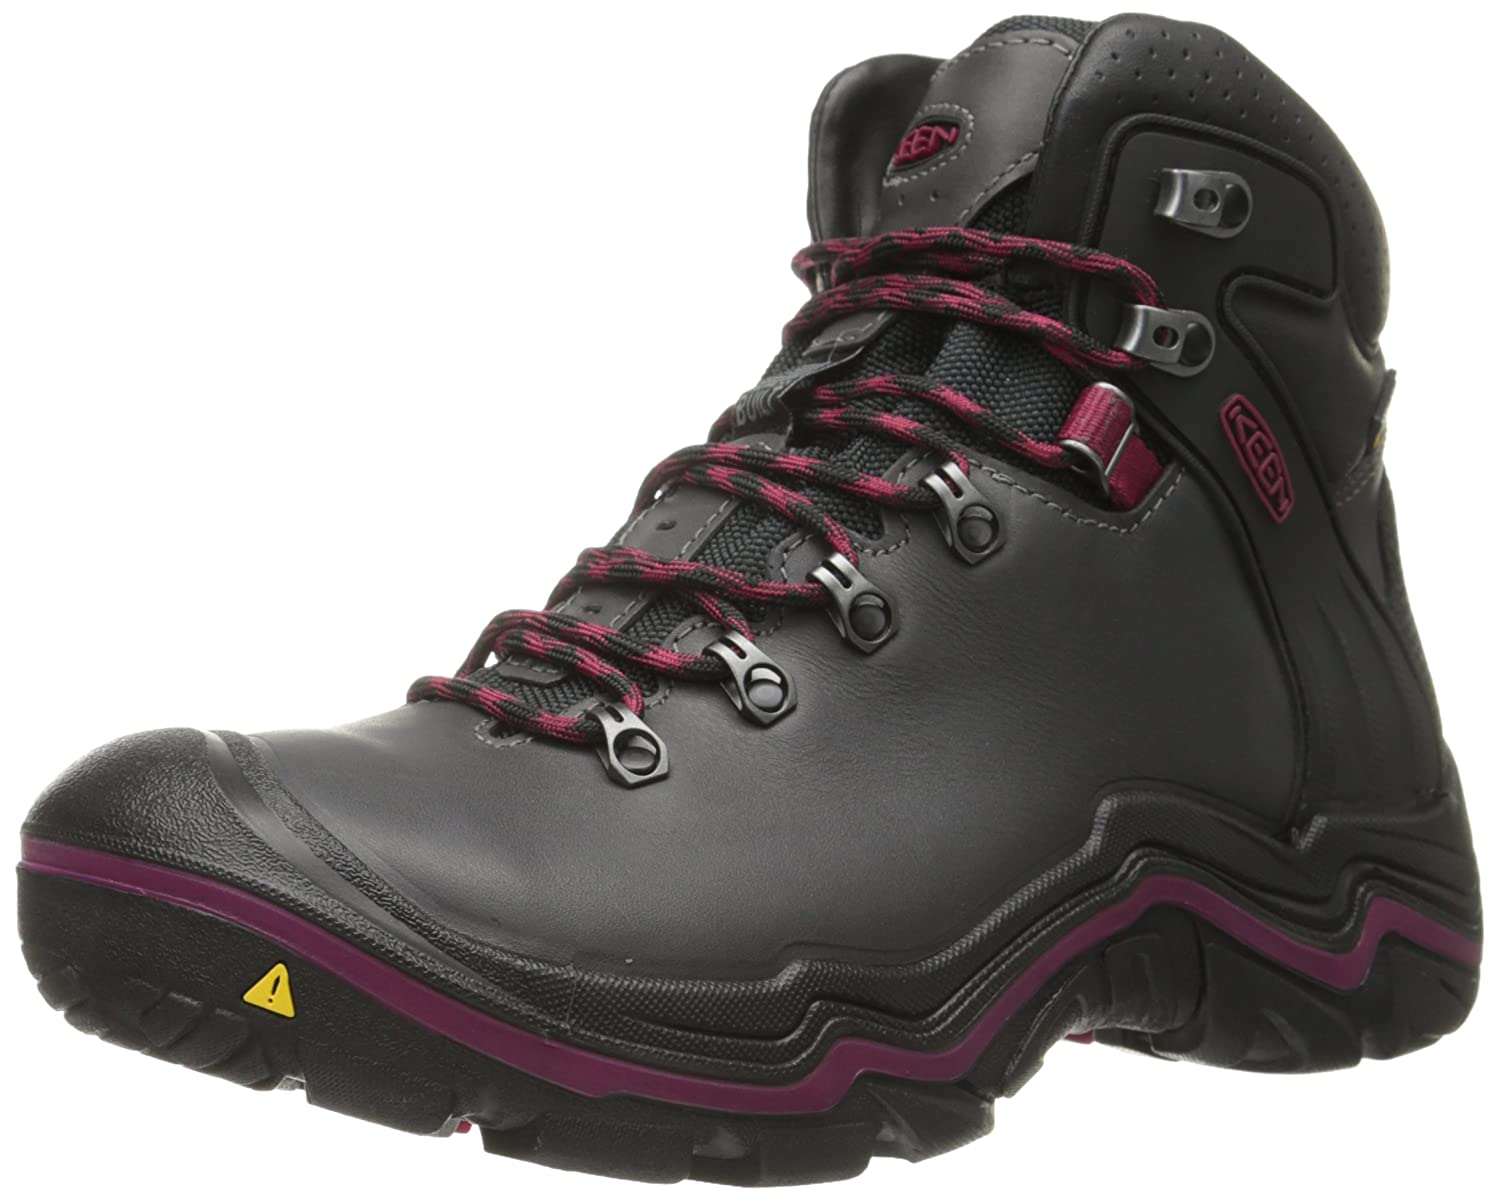 KEEN Women's Liberty Ridge Boot B00RLULAYM 10 B(M) US|Gargoyle/Beet Red